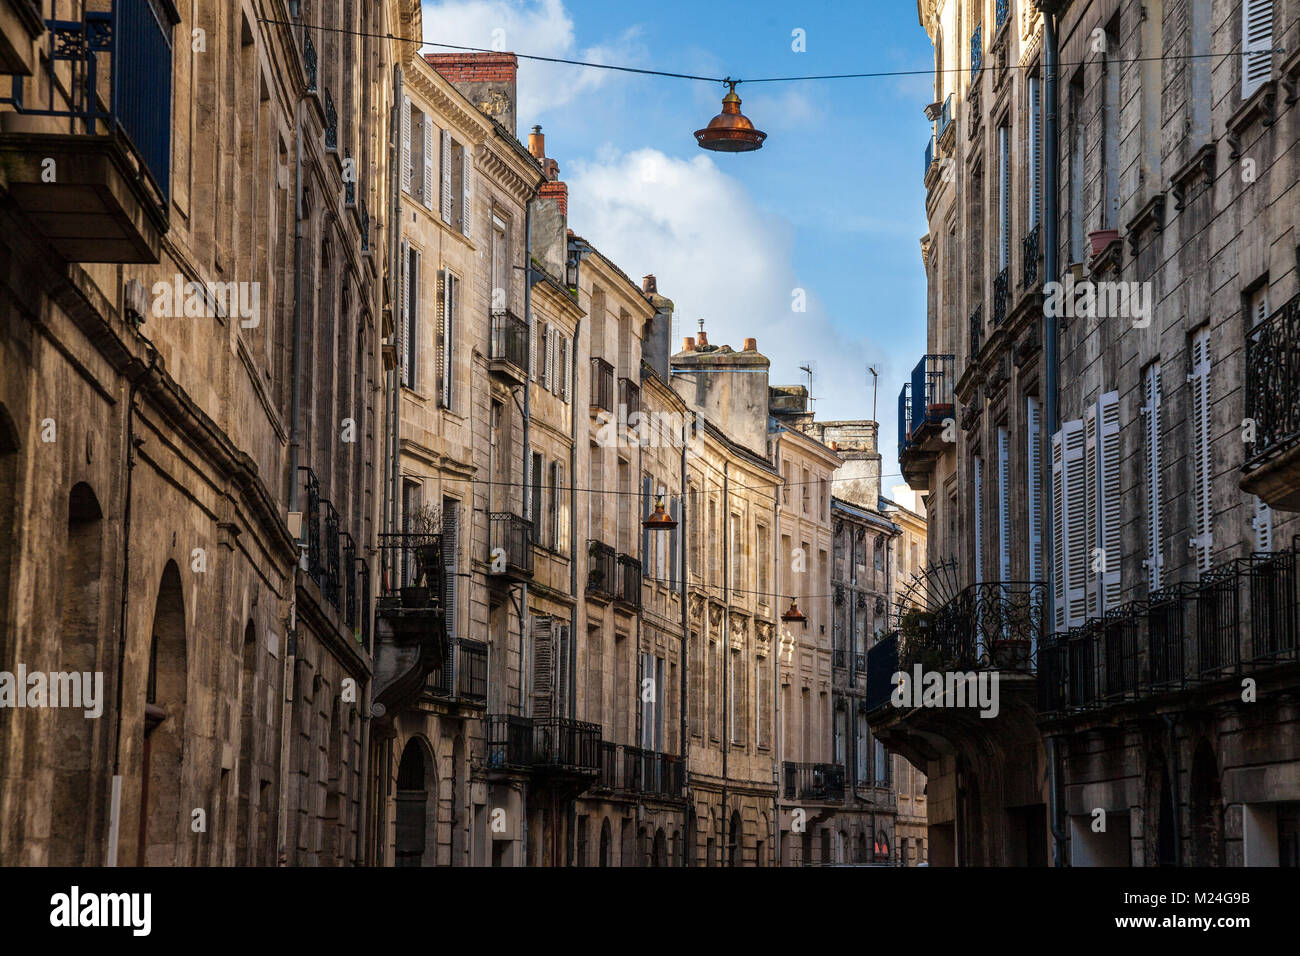 Facade of medieval buildings in a street in the city center of Bordeaux, France. These buildings are typical of - Stock Image